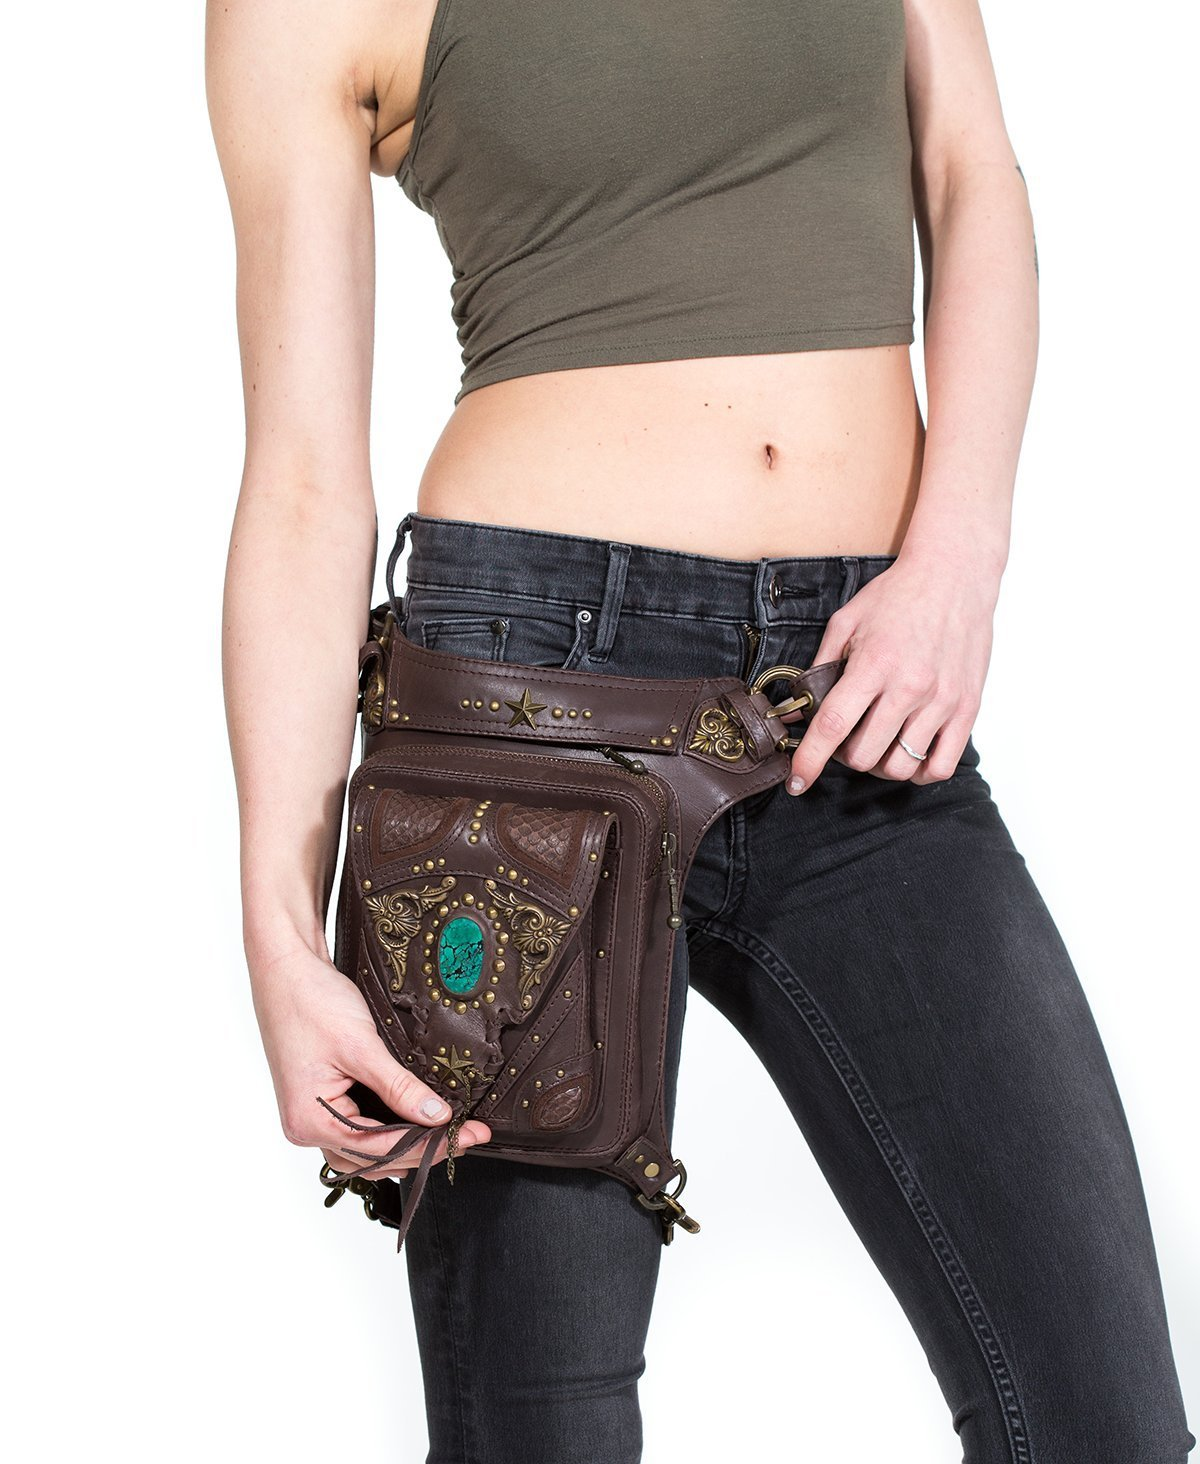 VINTAGE VIBES Brown Leather and Turquoise Stone Hip Bag / Shoulder Holster / Cross-body Bag